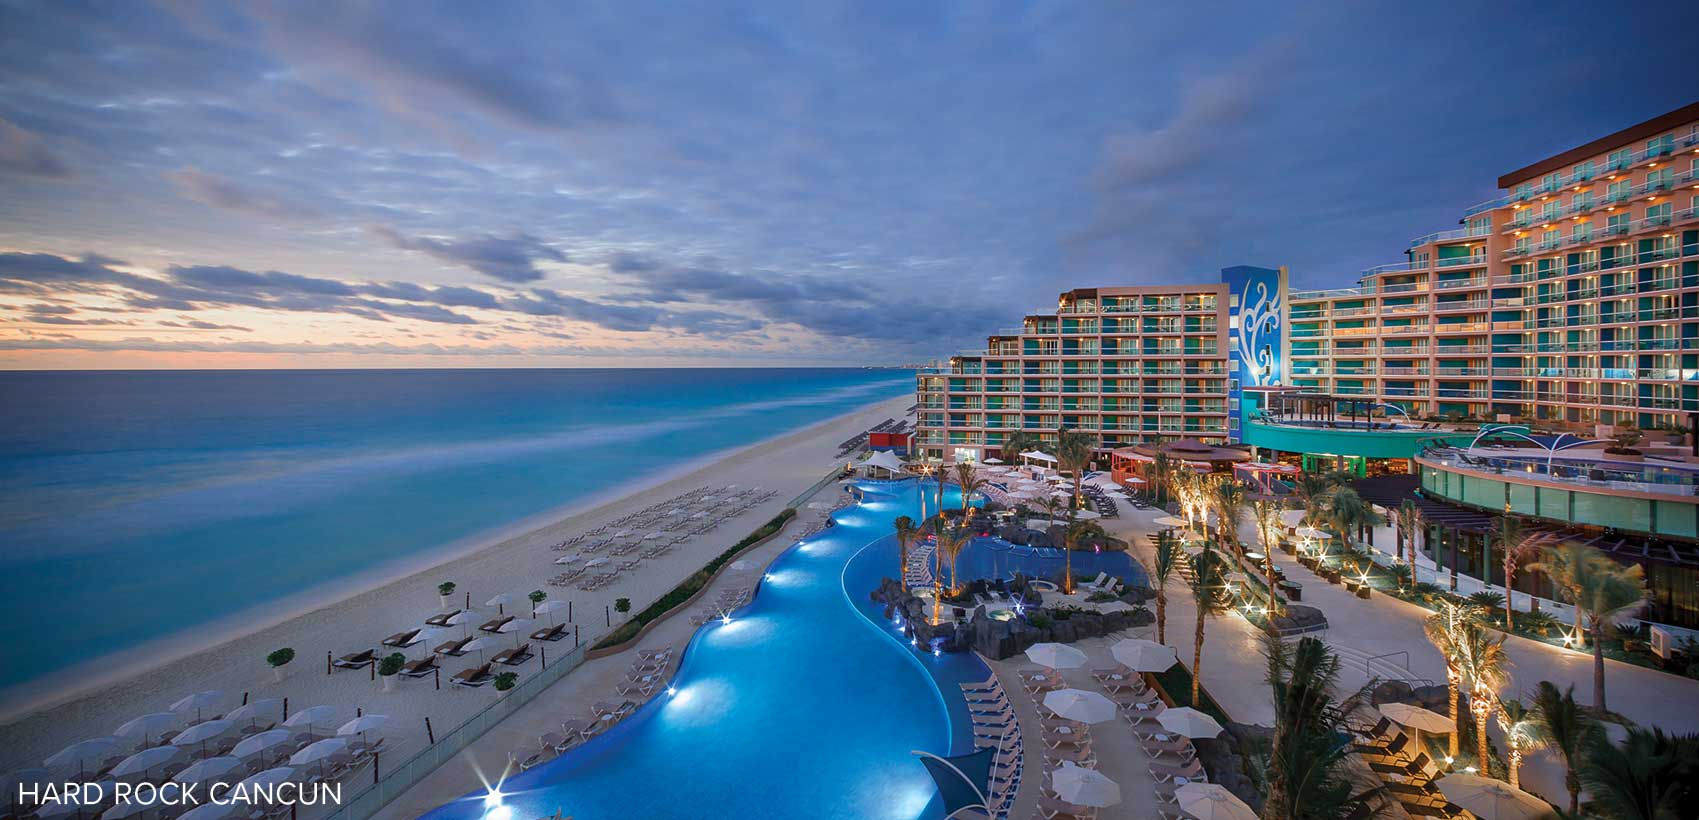 Save on Hard Rock Hotels with WestJet Vacations